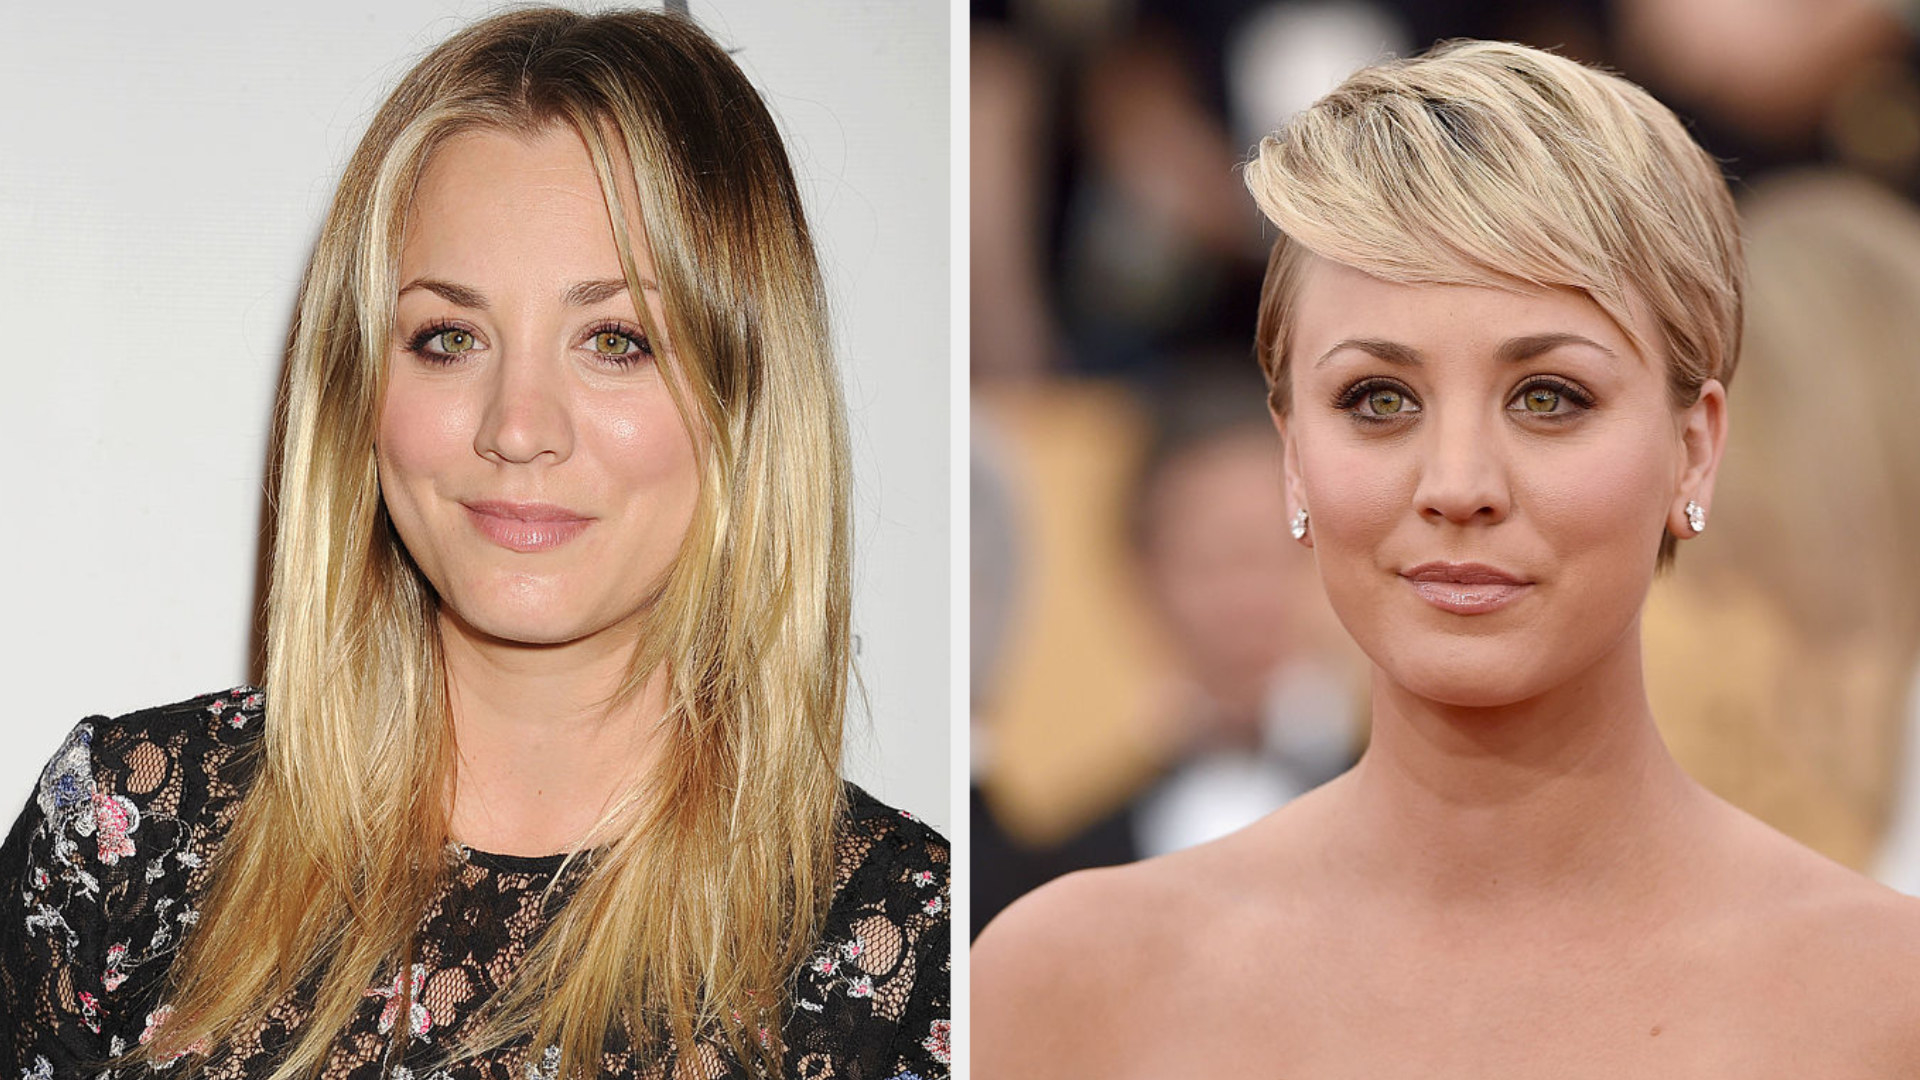 Kaley with long blonde hair and Kaley with a blonde pixie cut